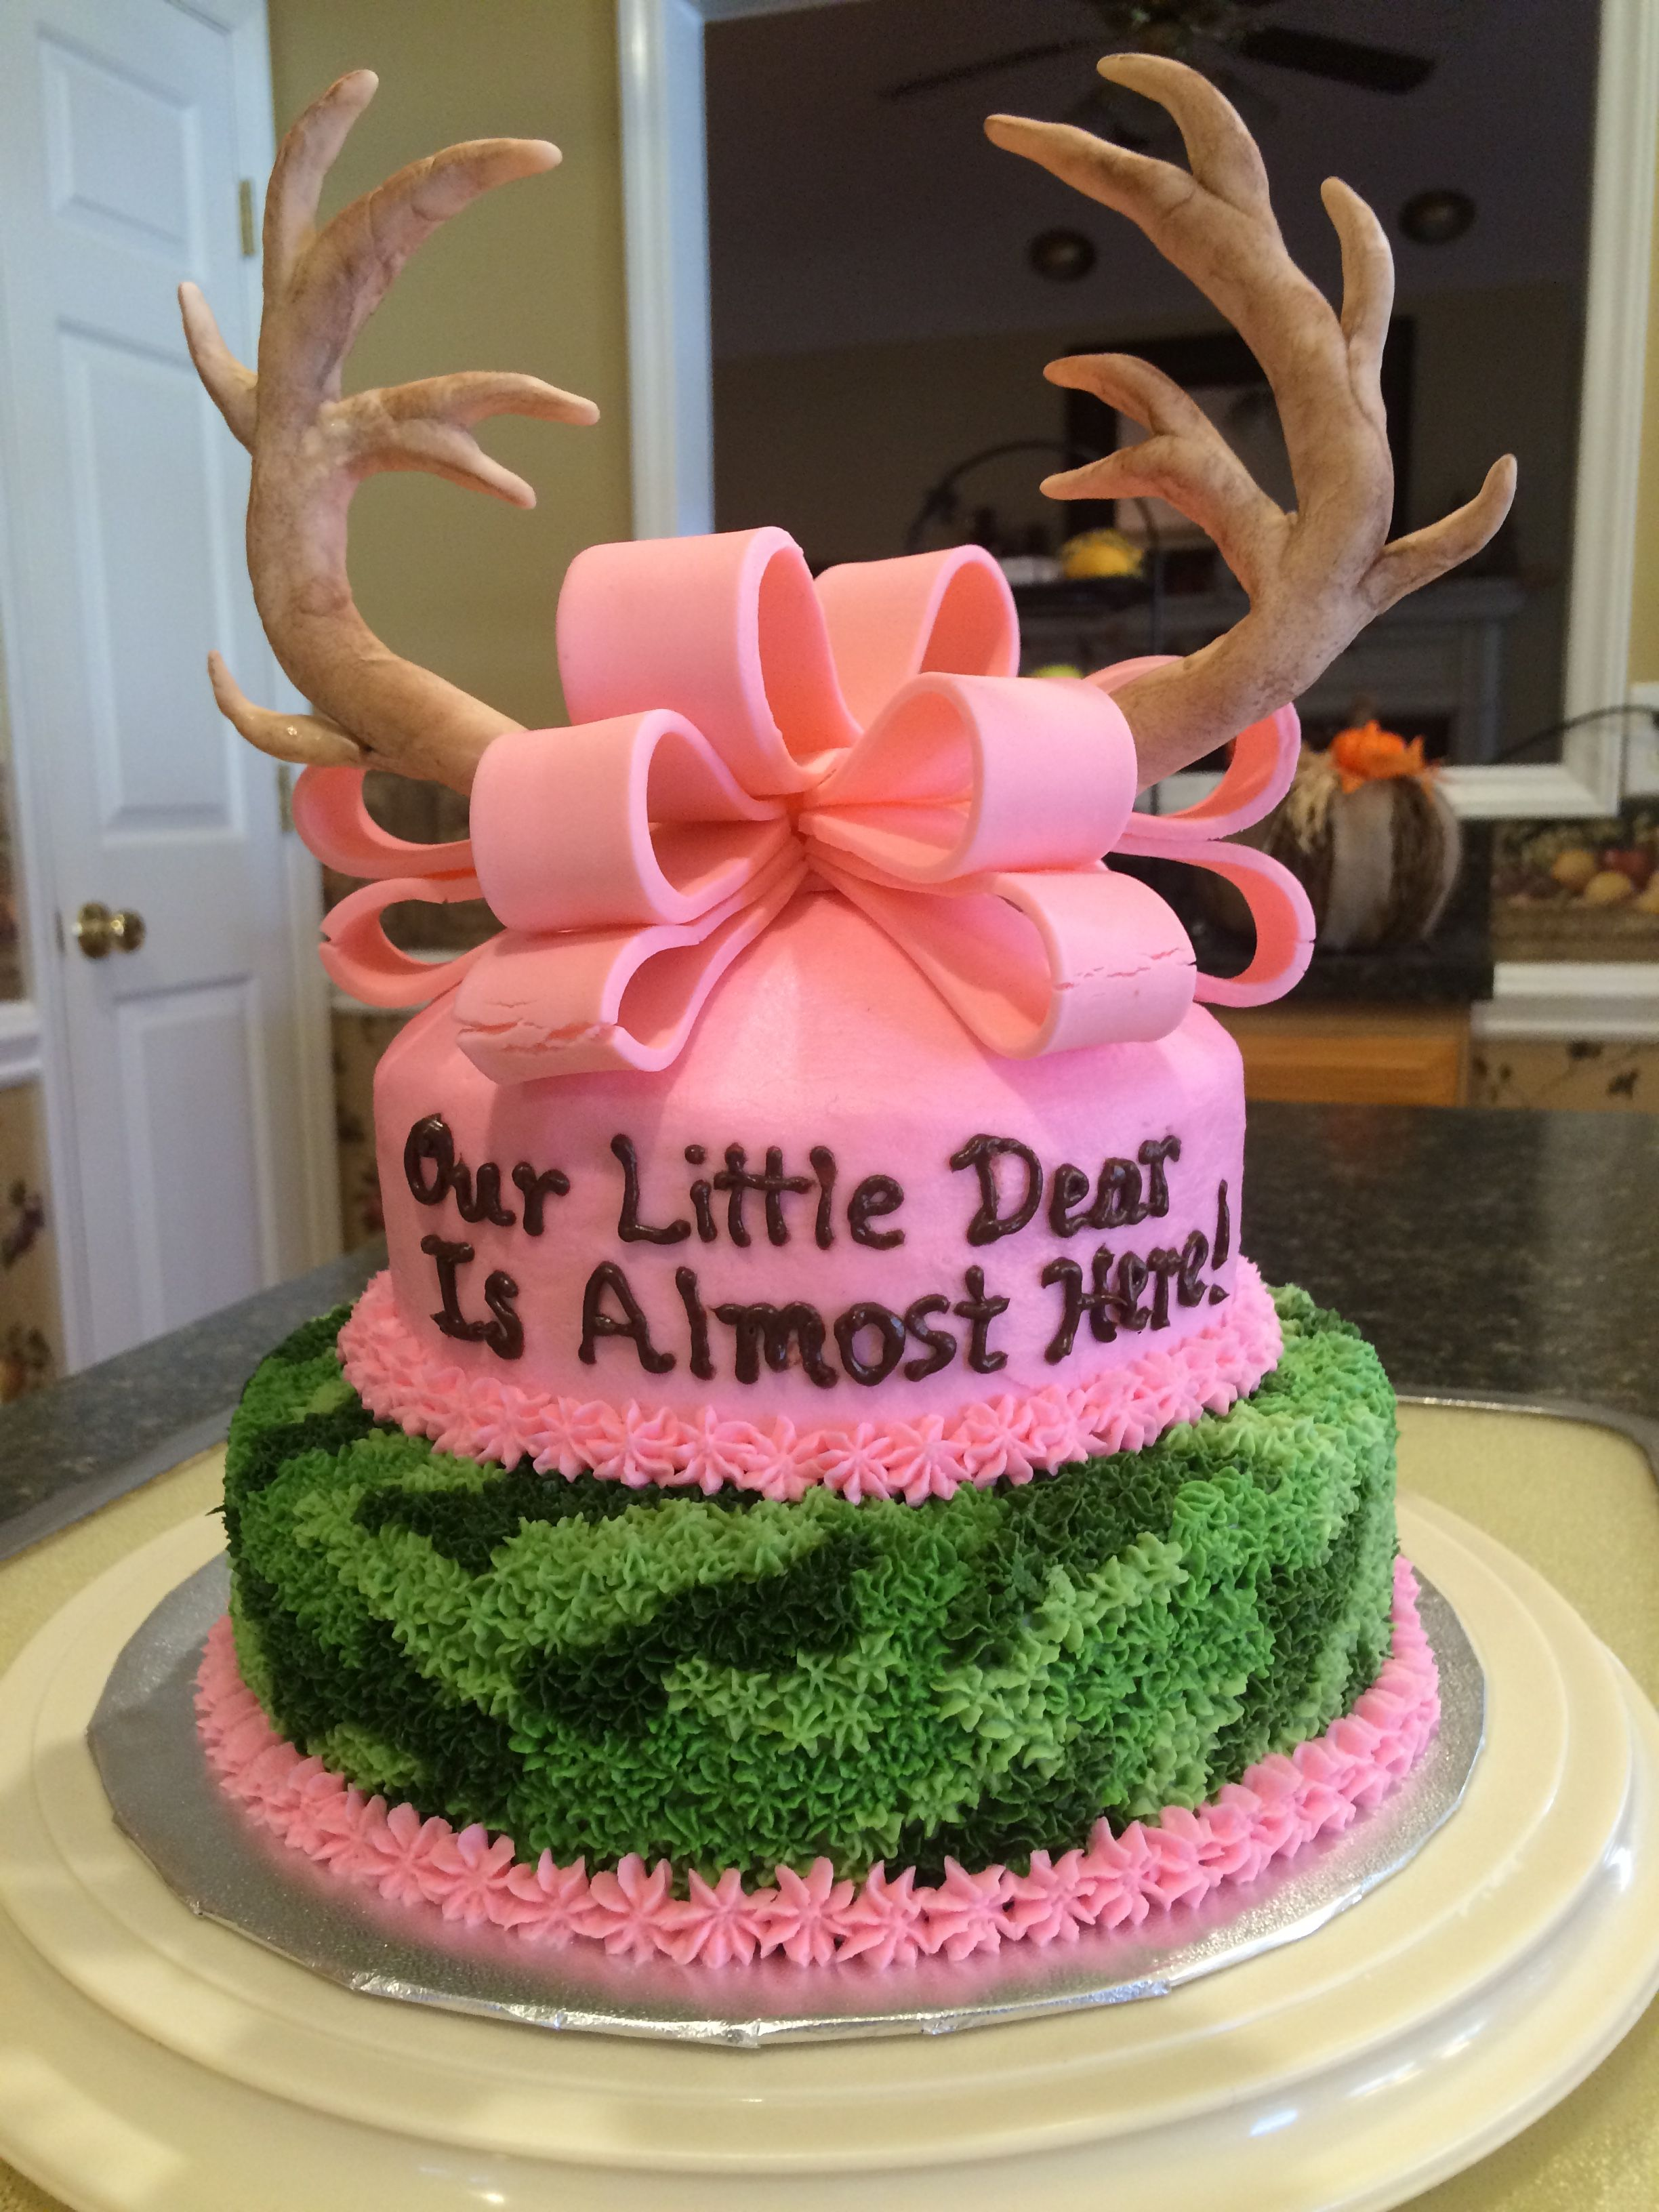 Cute Baby Shower Cake Idea Pink And Camo Fun With Images